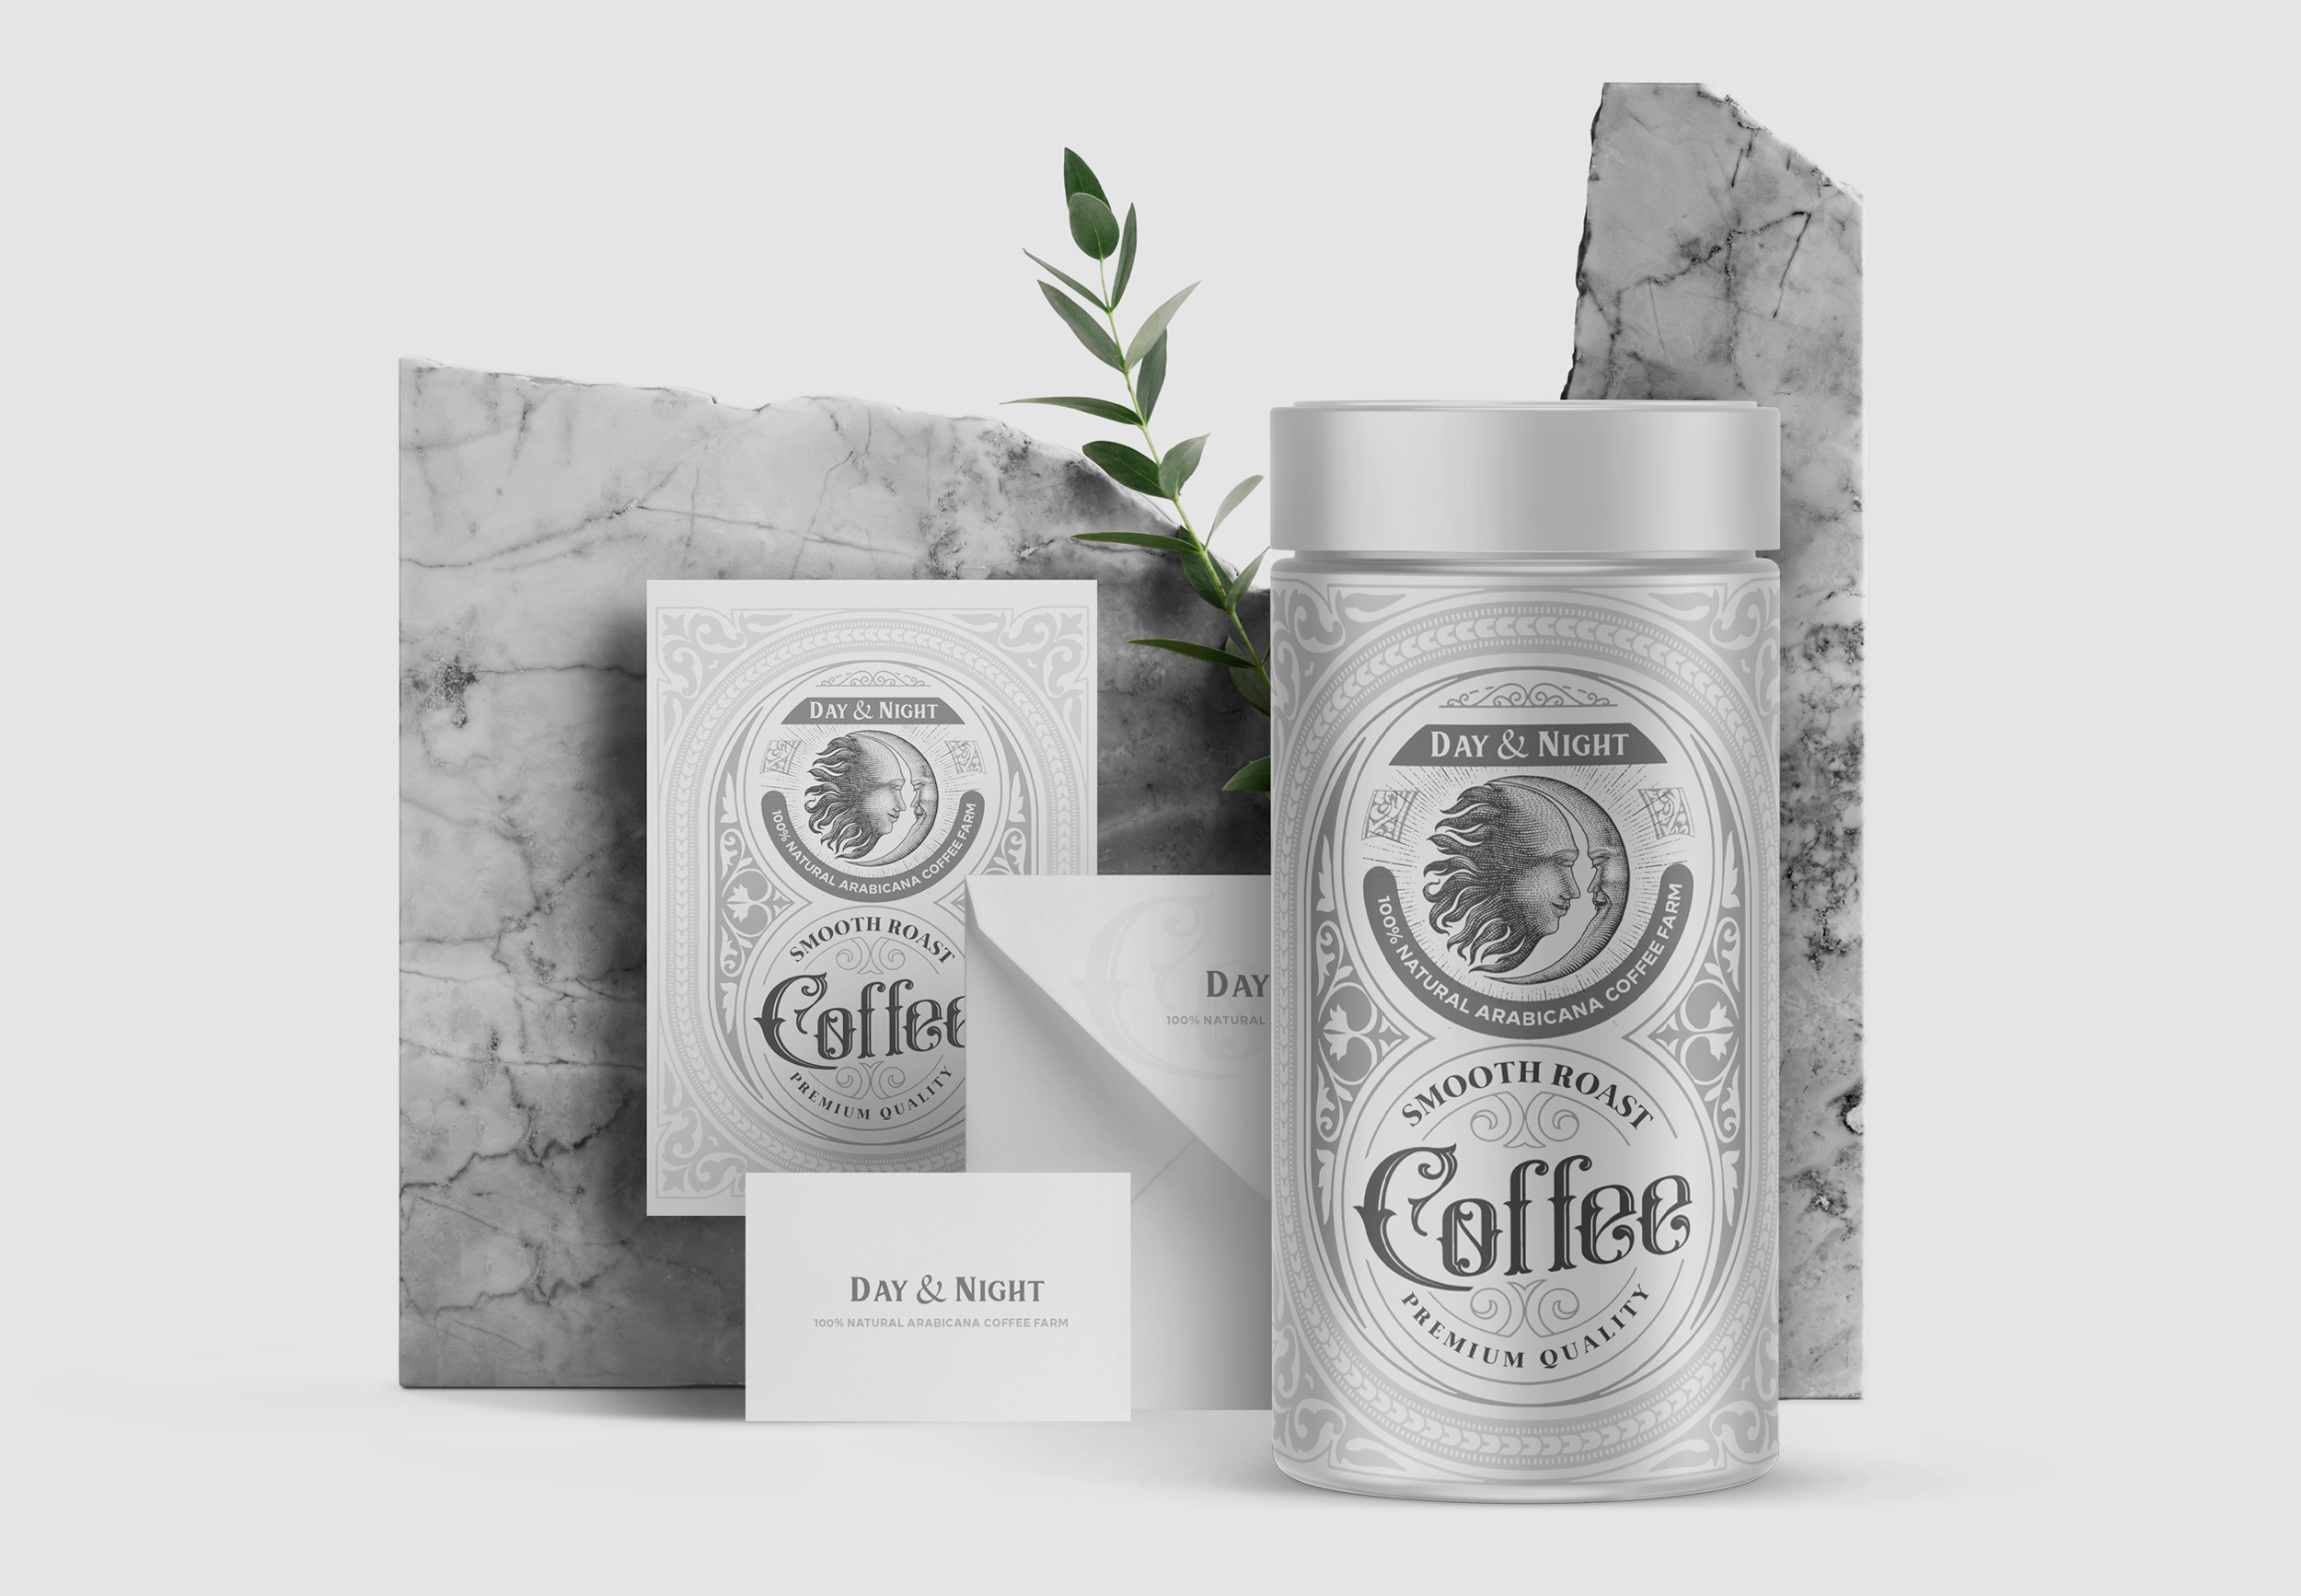 Day & Night Coffee Packaging By Studio Metis